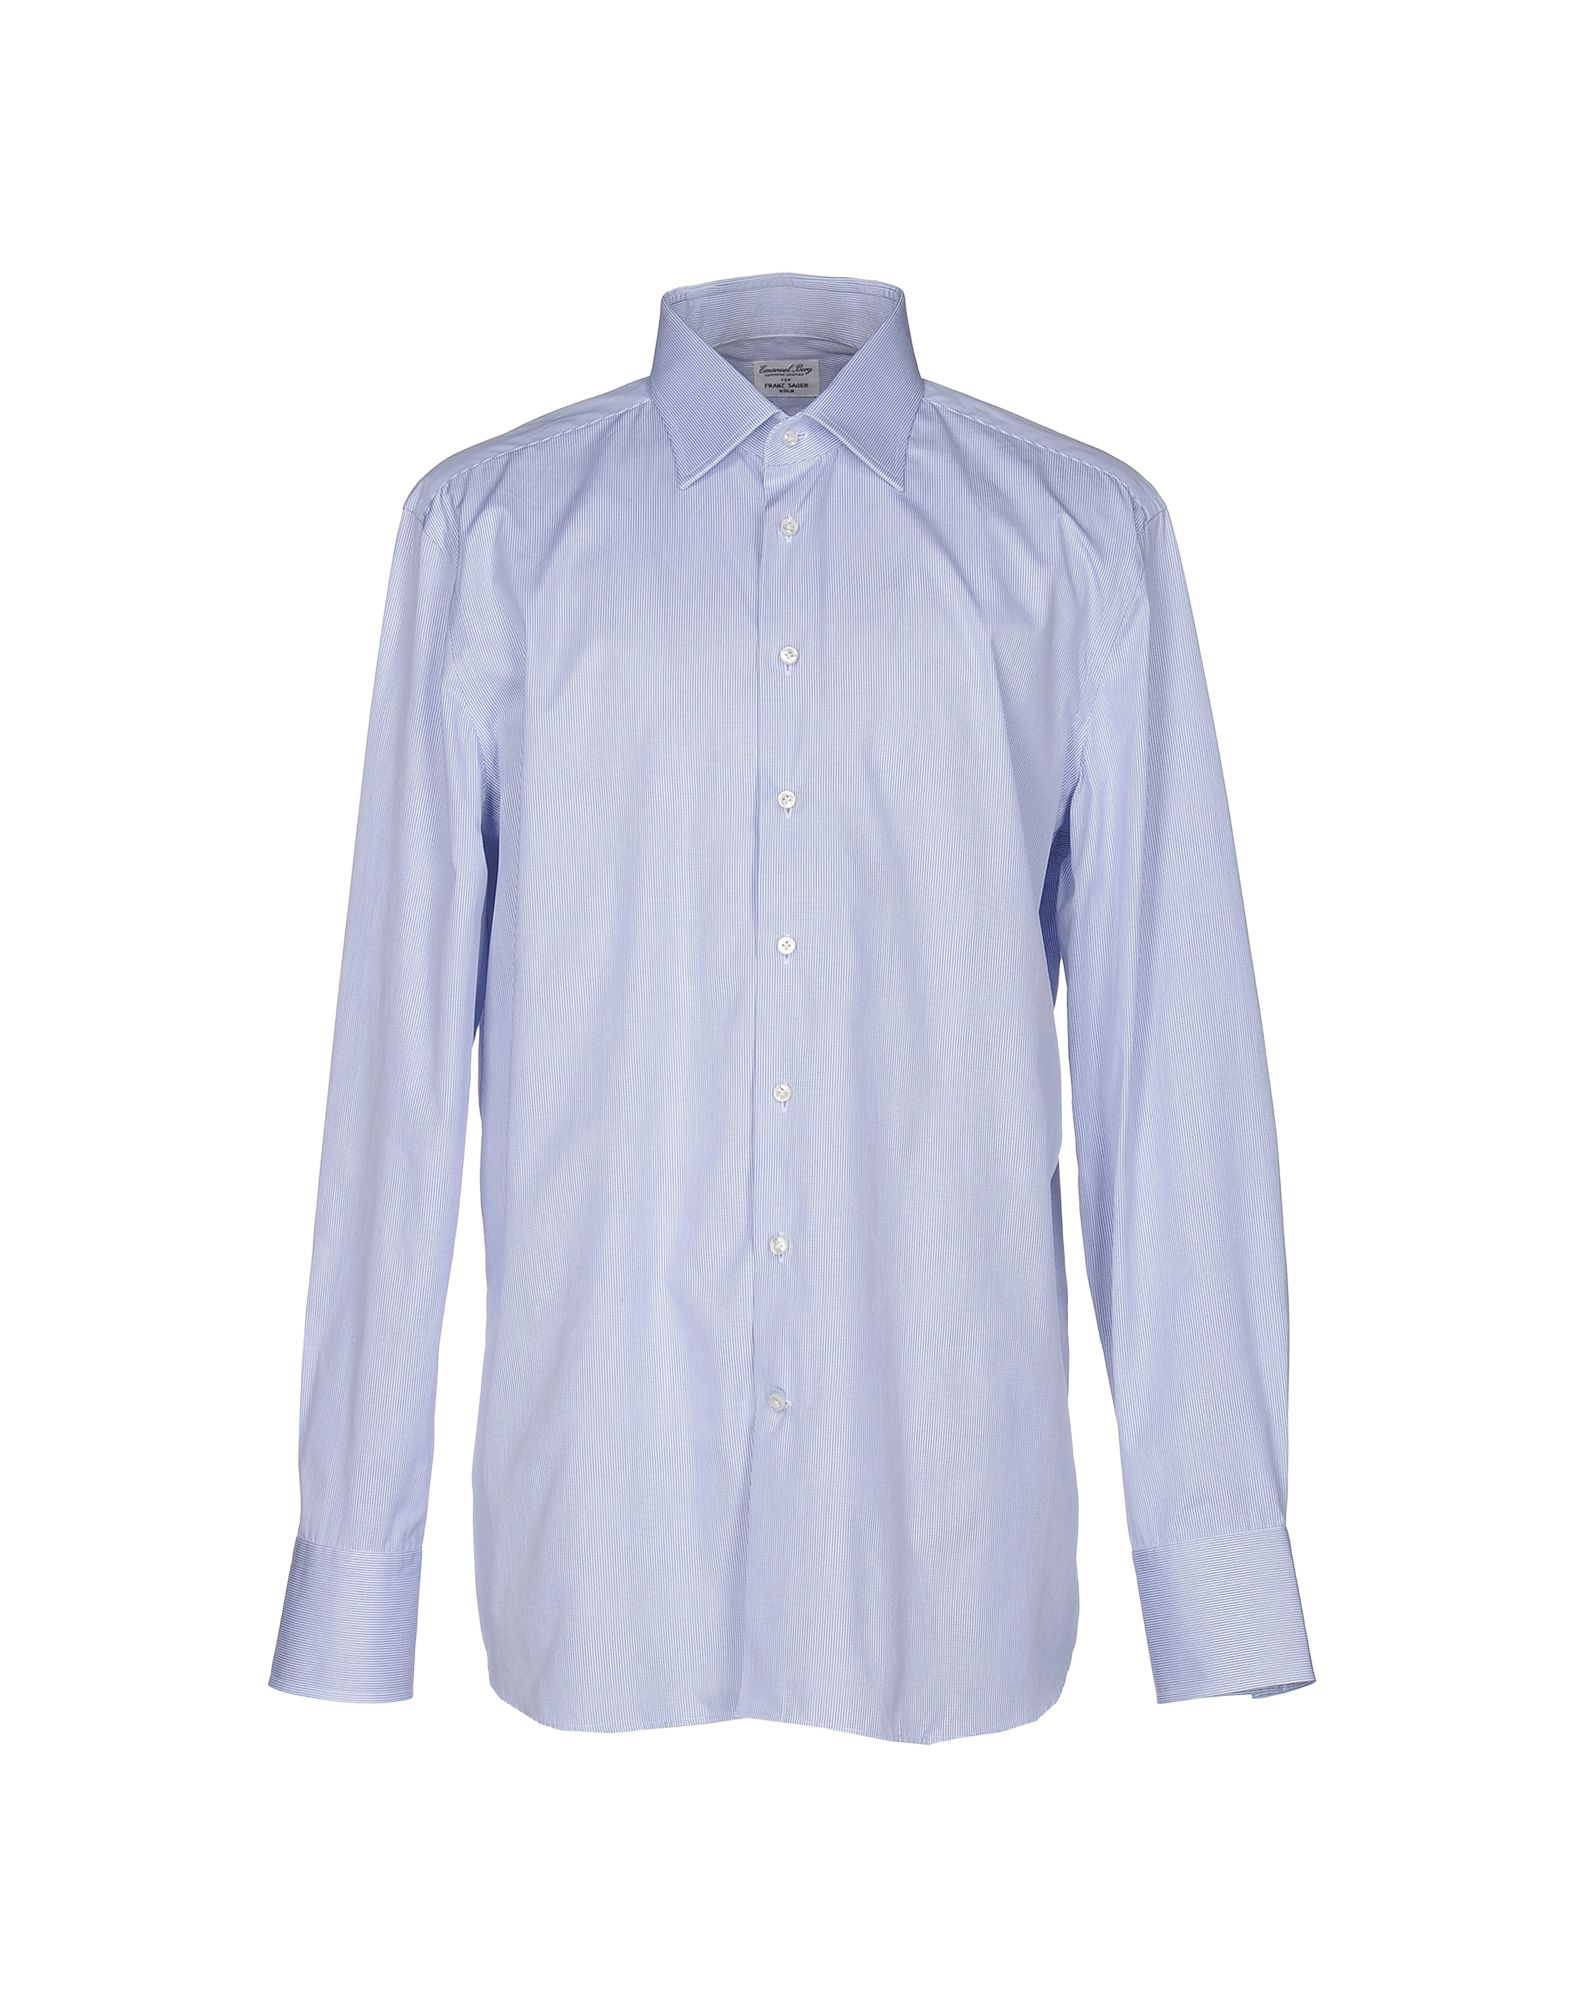 EMANUEL BERG Checked Shirt in Blue